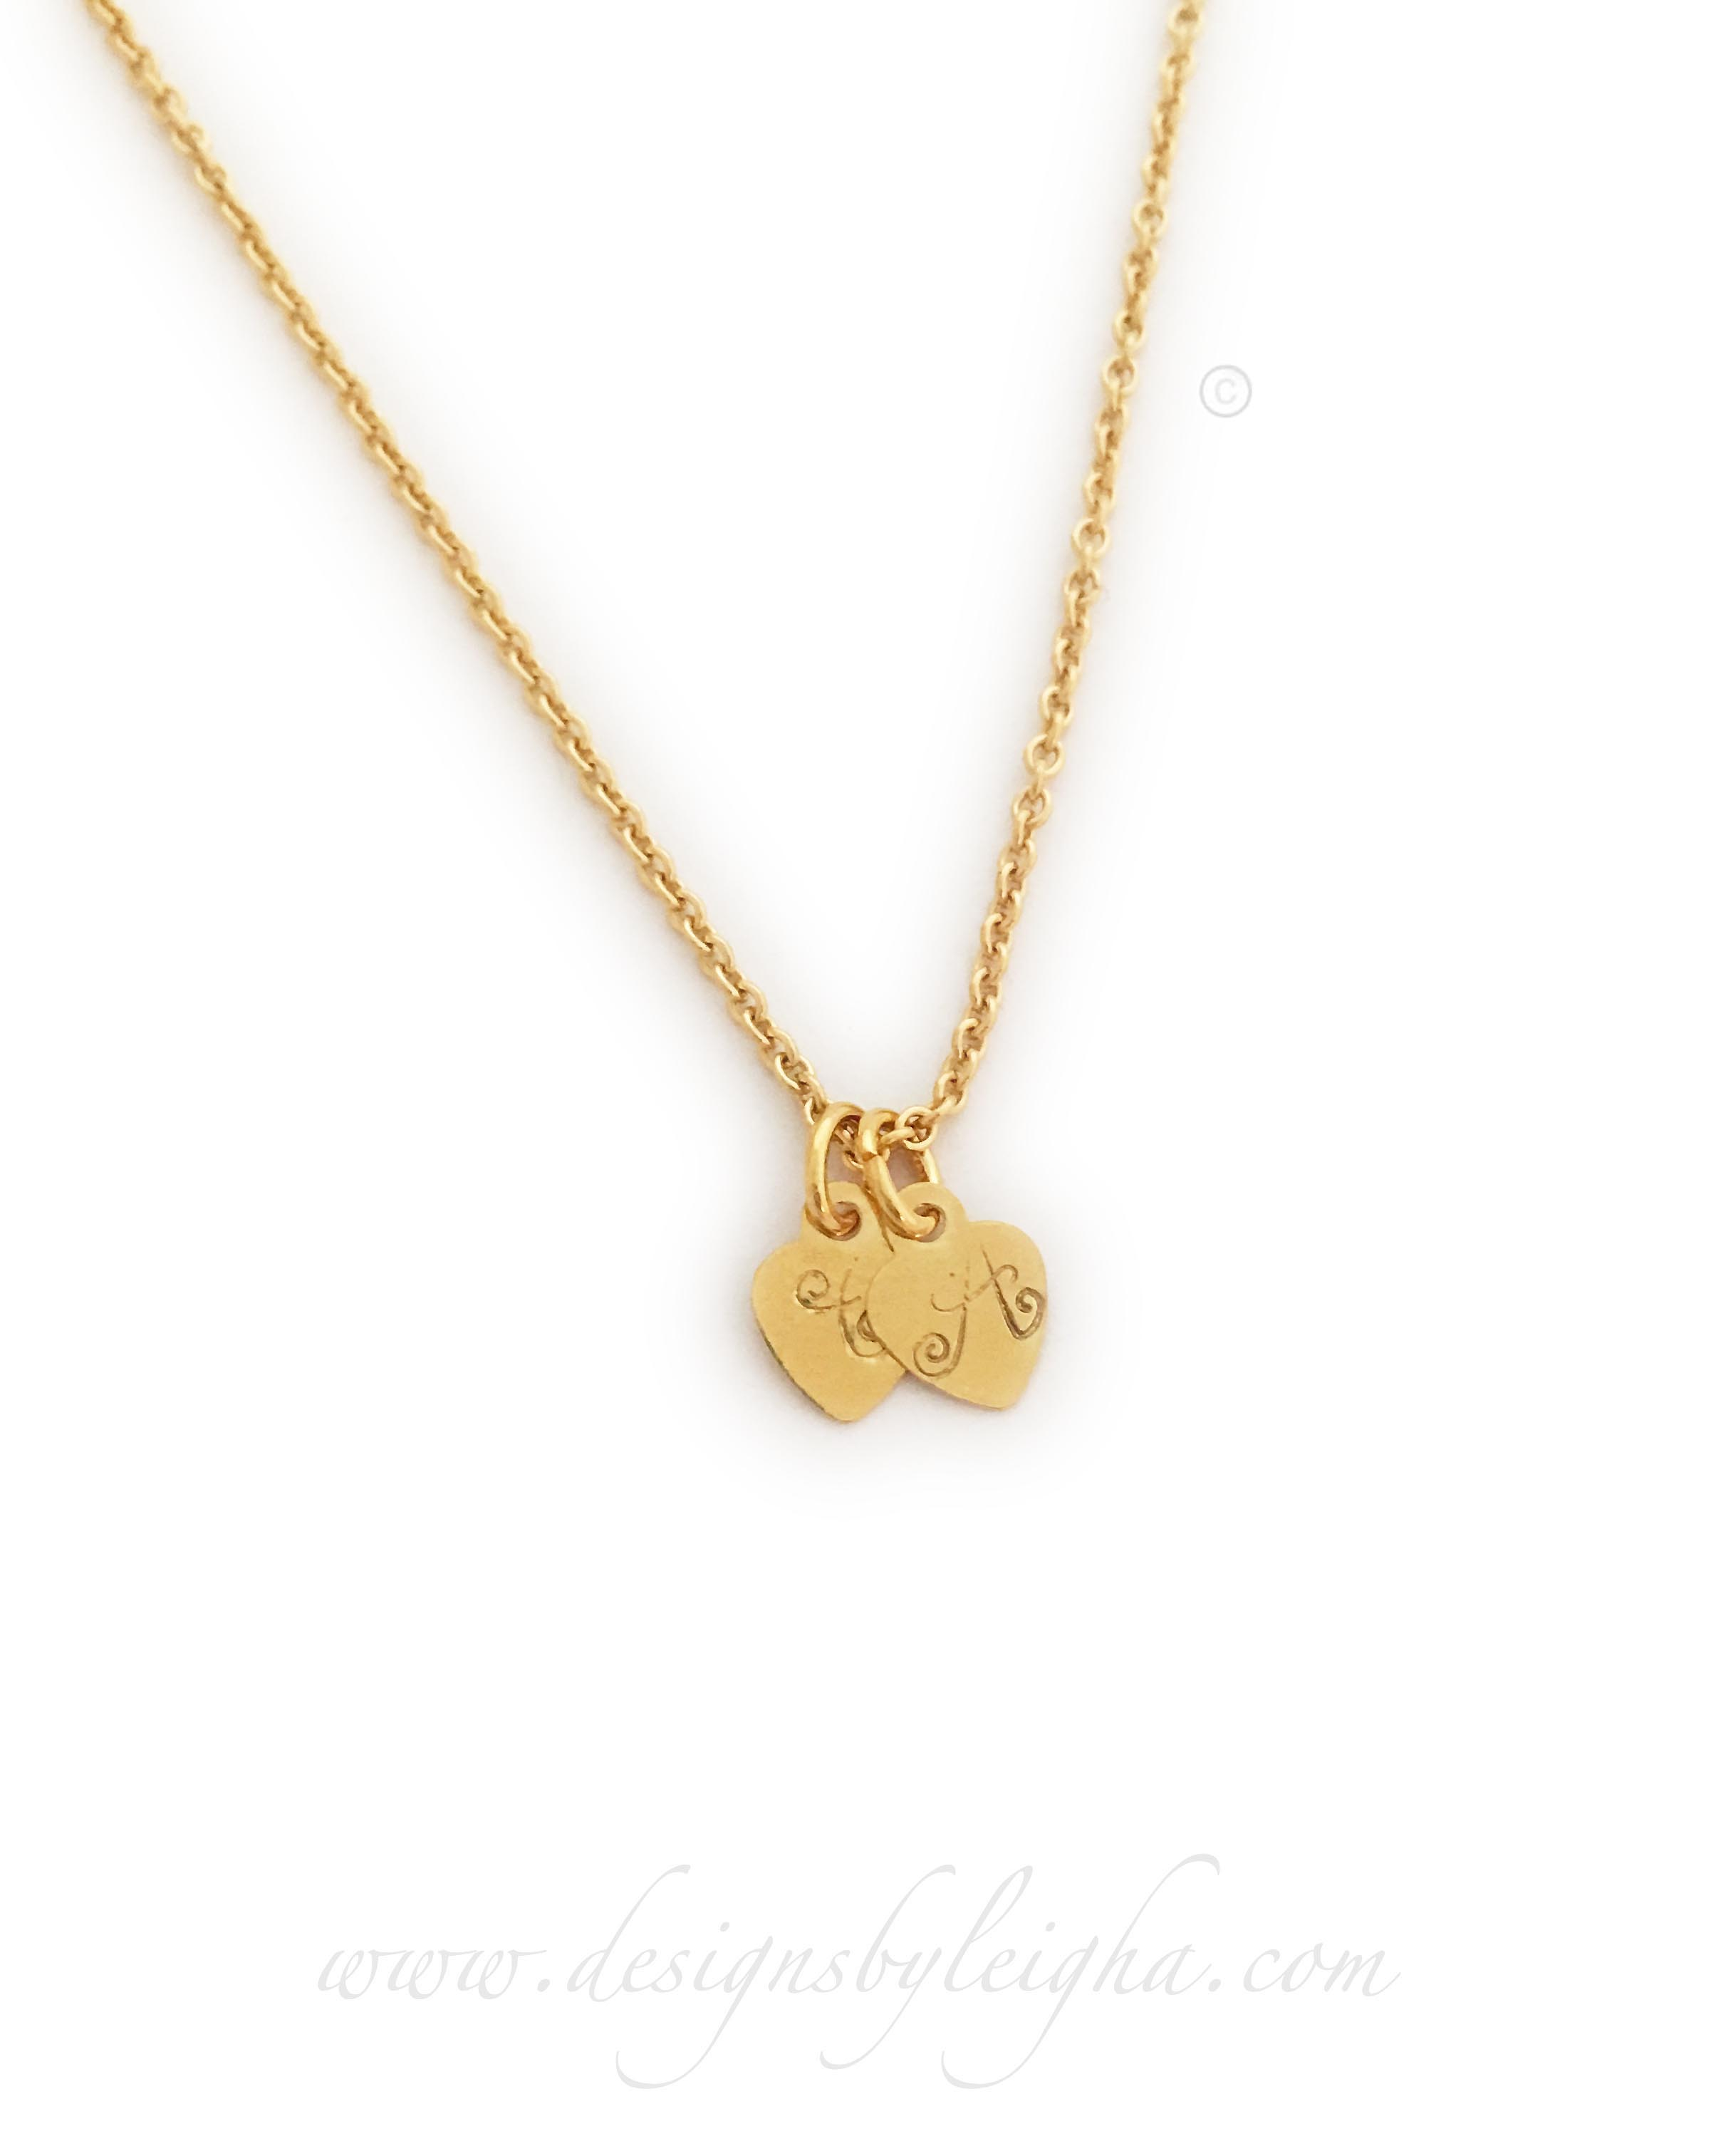 "This Gold Heart Necklace is shown with 2 gold heart initial charms: C and A on an 18"" gold-plated rolo chain."